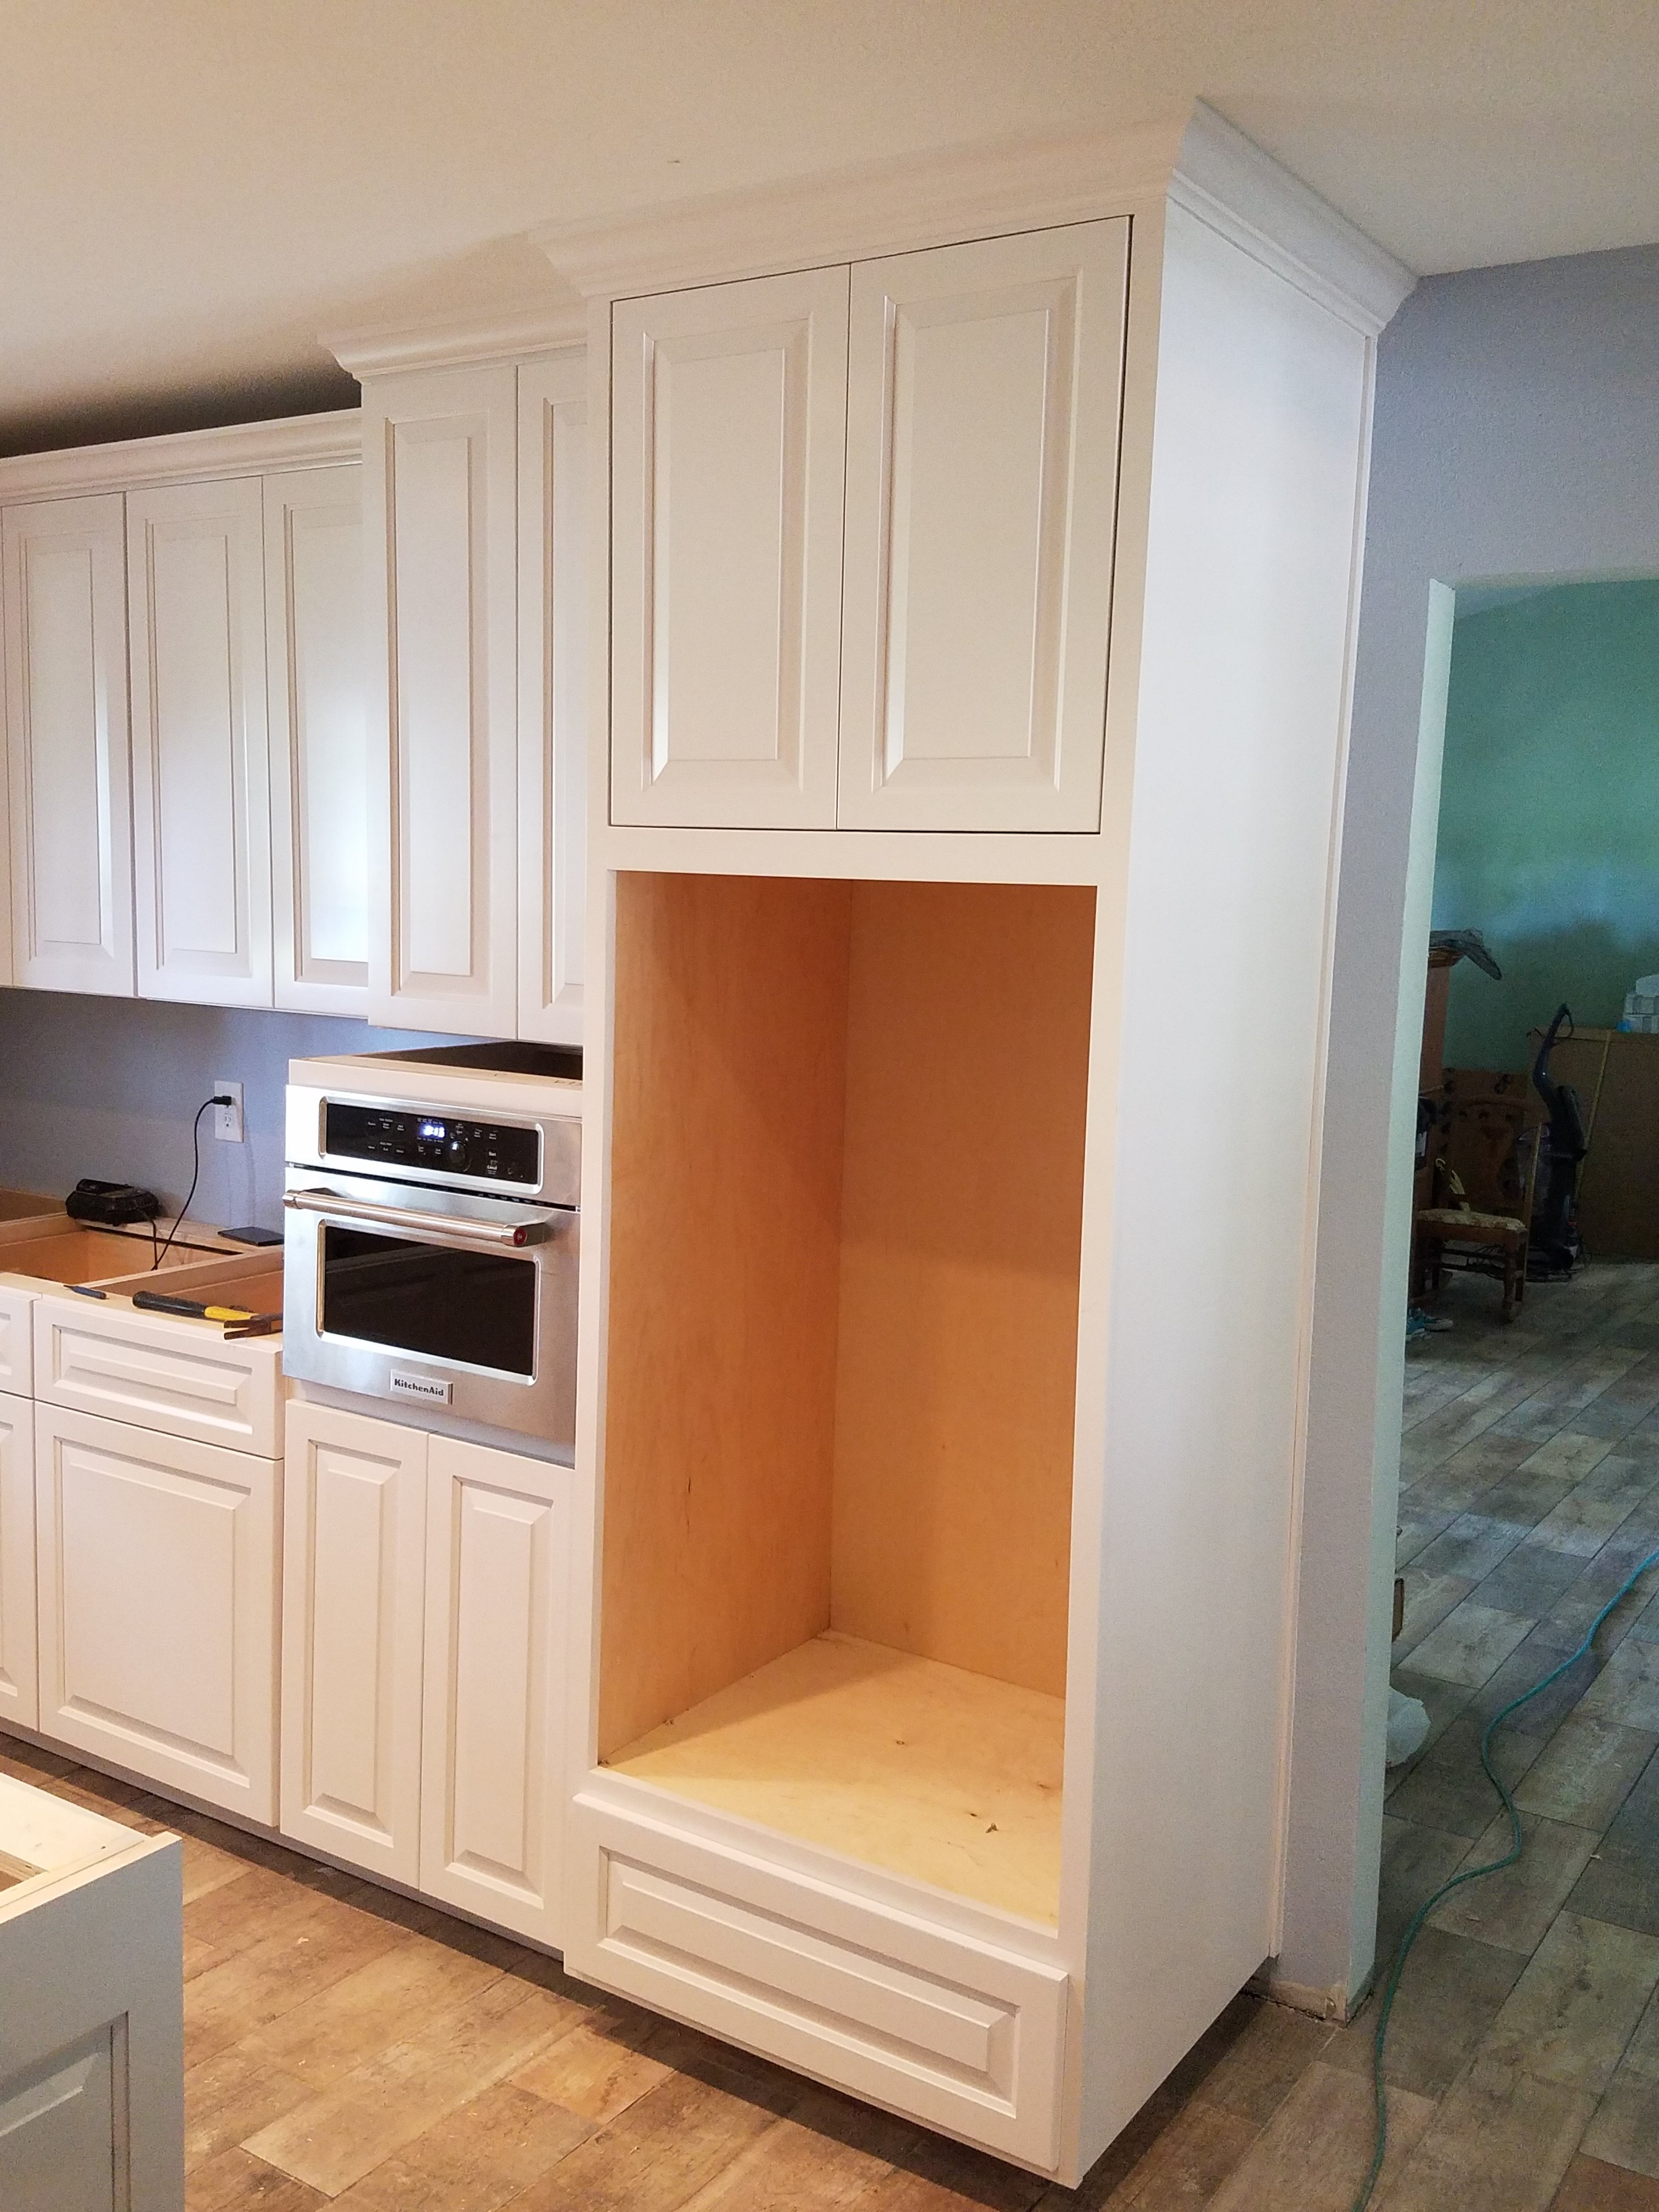 San Antonio Kitchen Cabinets Gallery Cabinet Remodeling And Kitchen Remodeling San